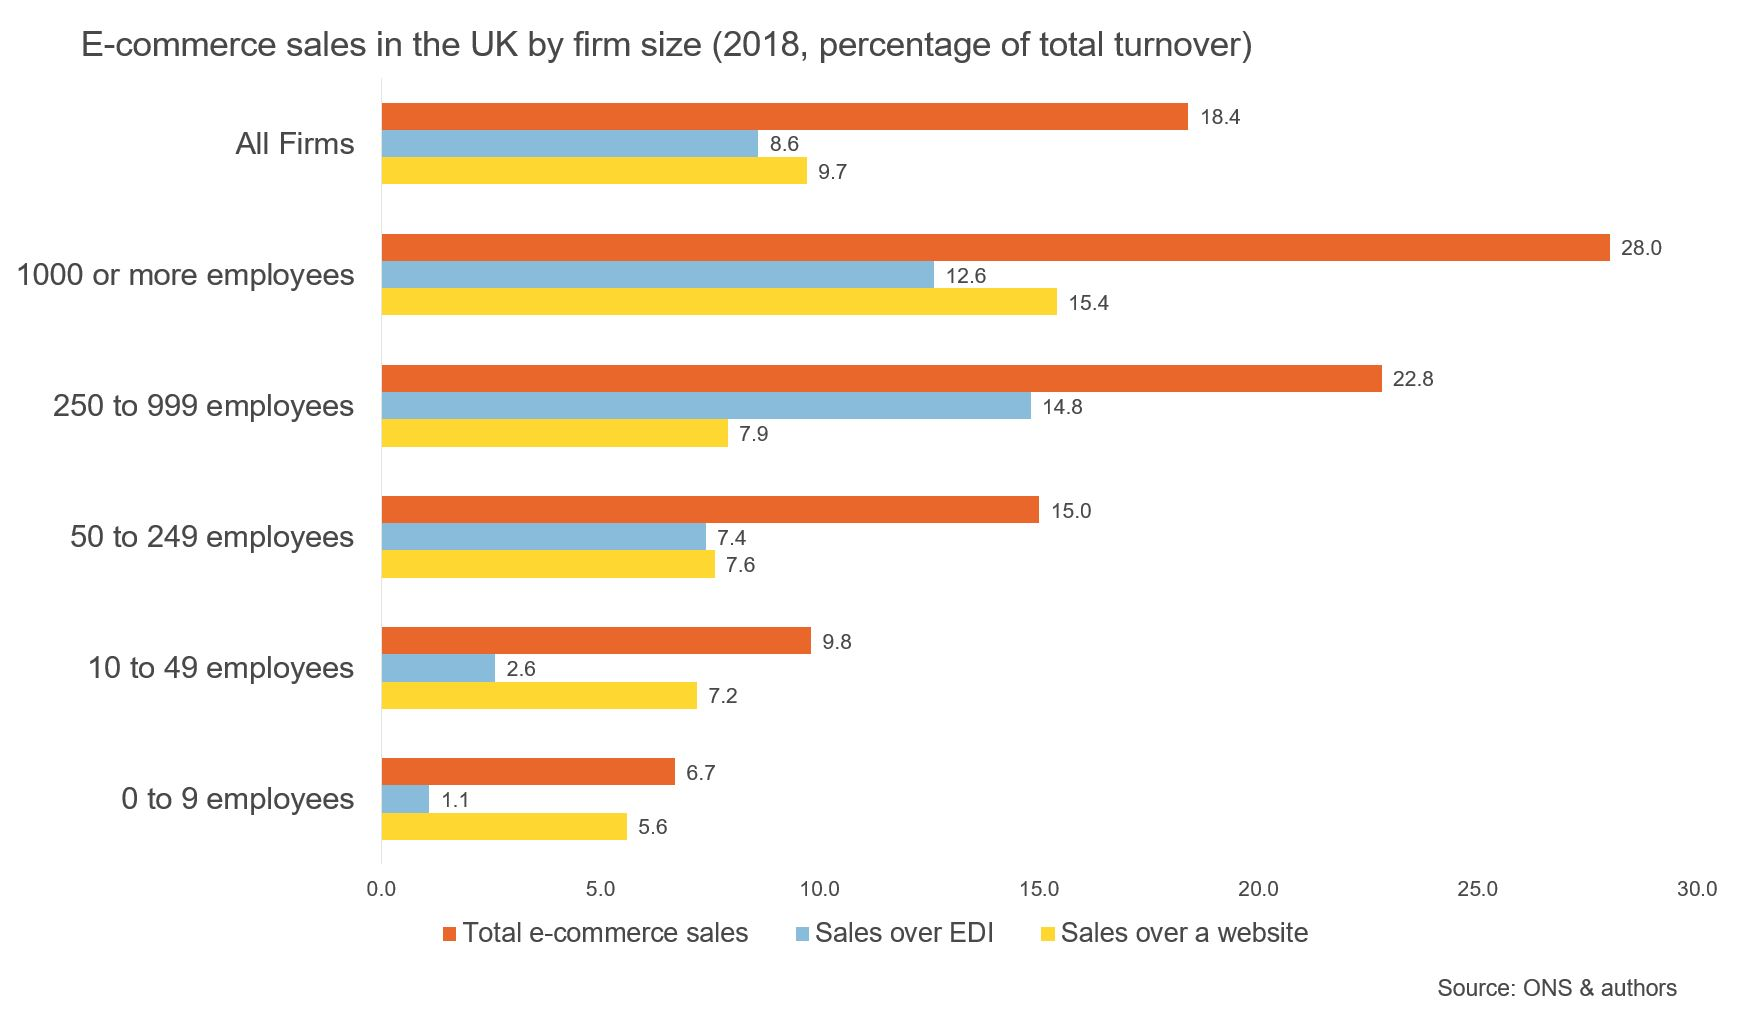 Figure showing ecommerce sales in the UK by firm size